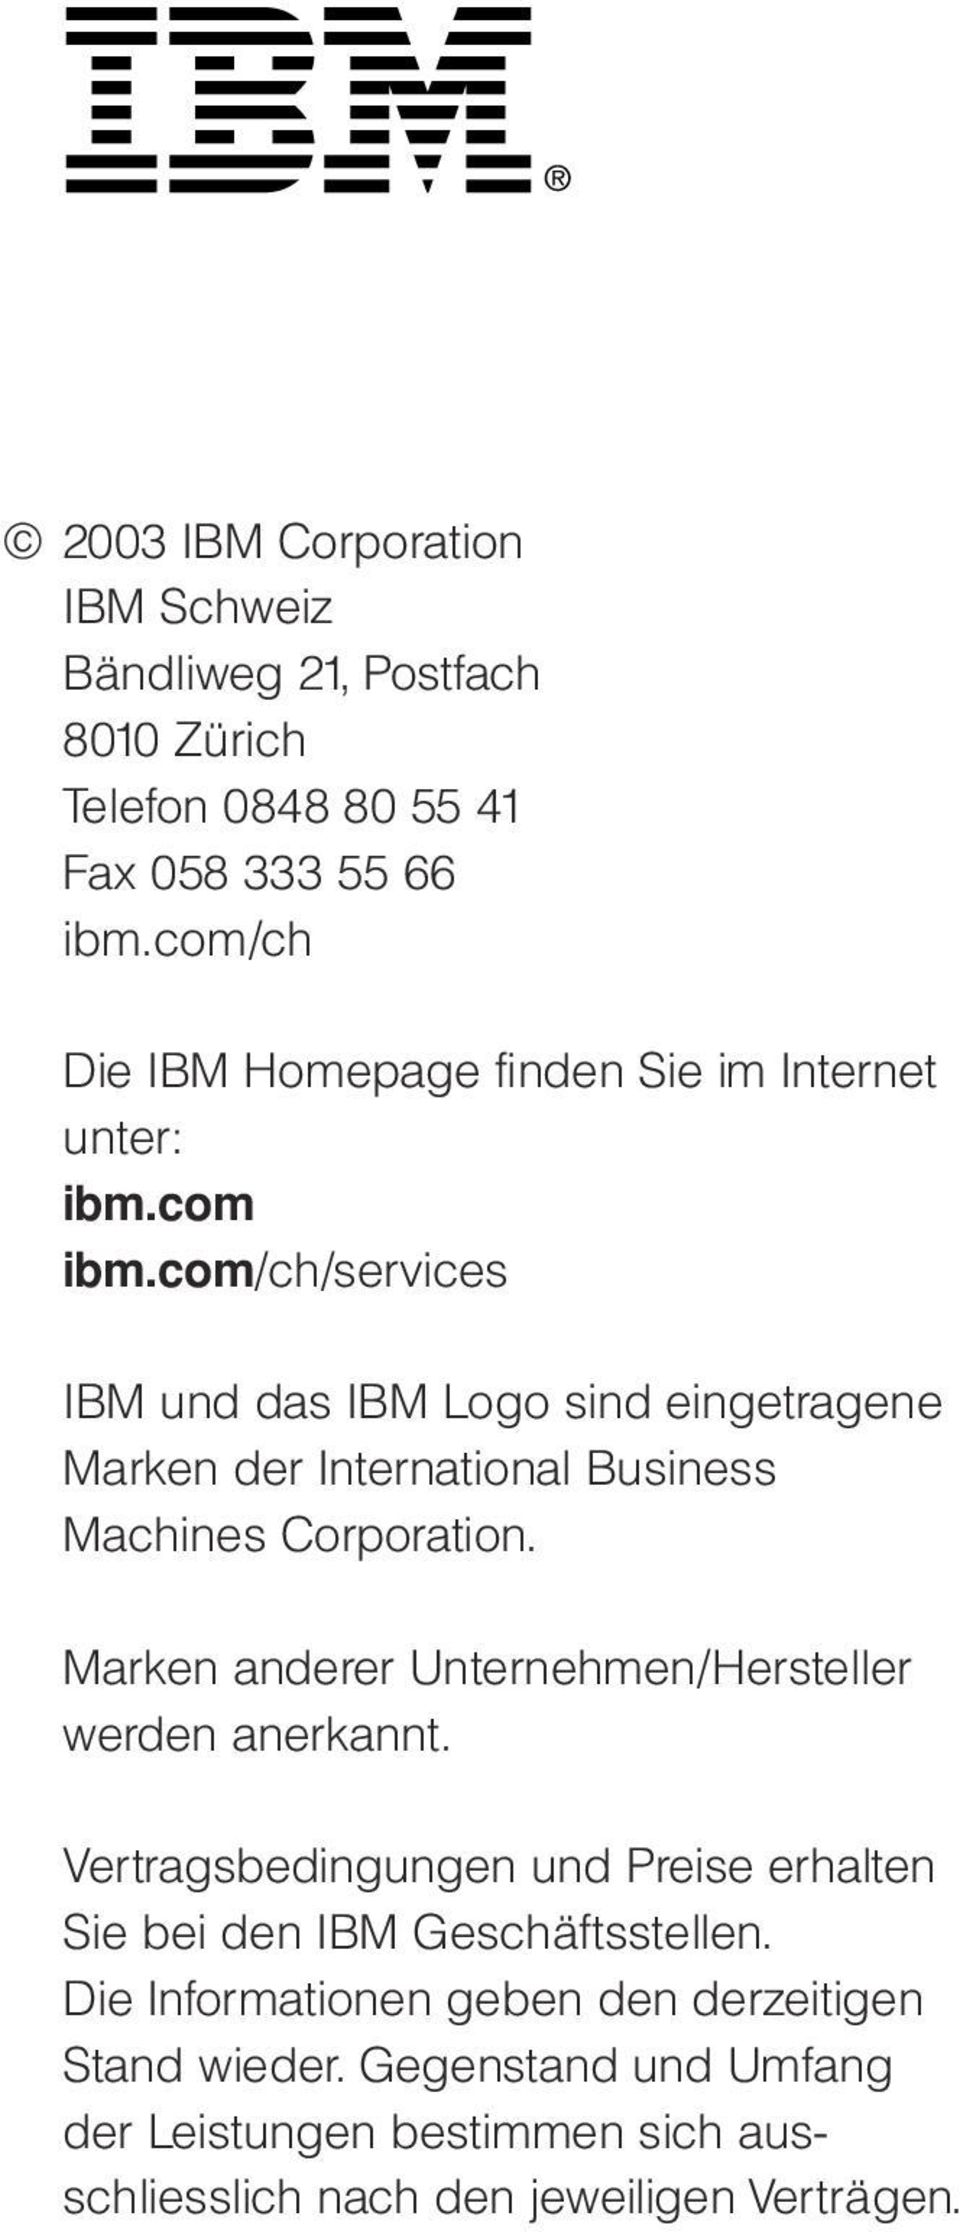 com/ch/services IBM und das IBM Logo sind eingetragene Marken der International Business Machines Corporation.